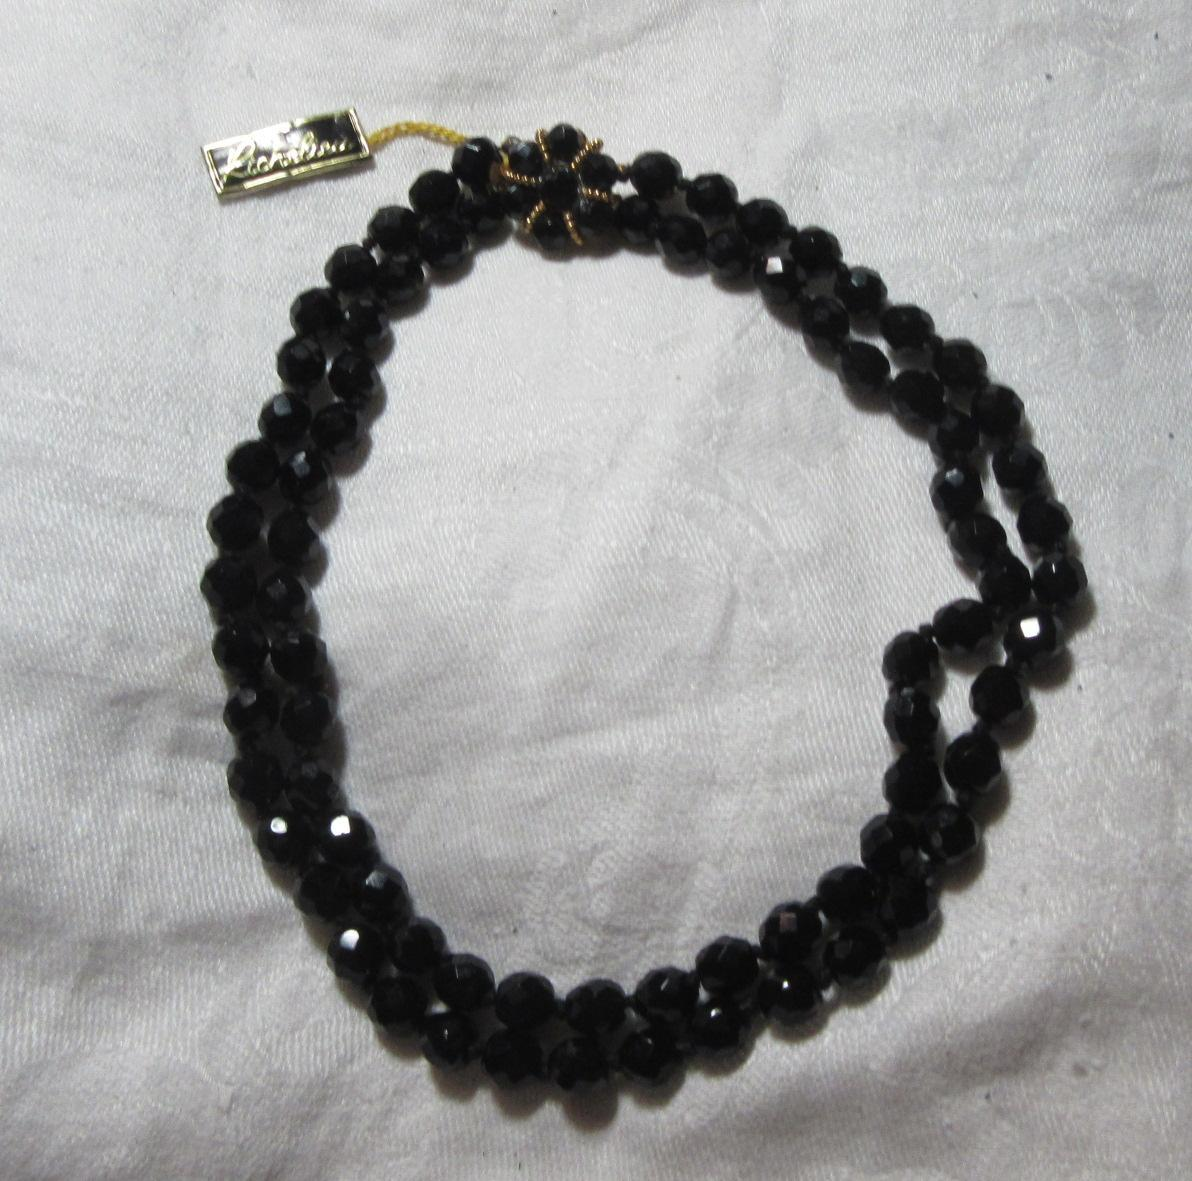 Old Richelieu Black Glass Beads Necklace